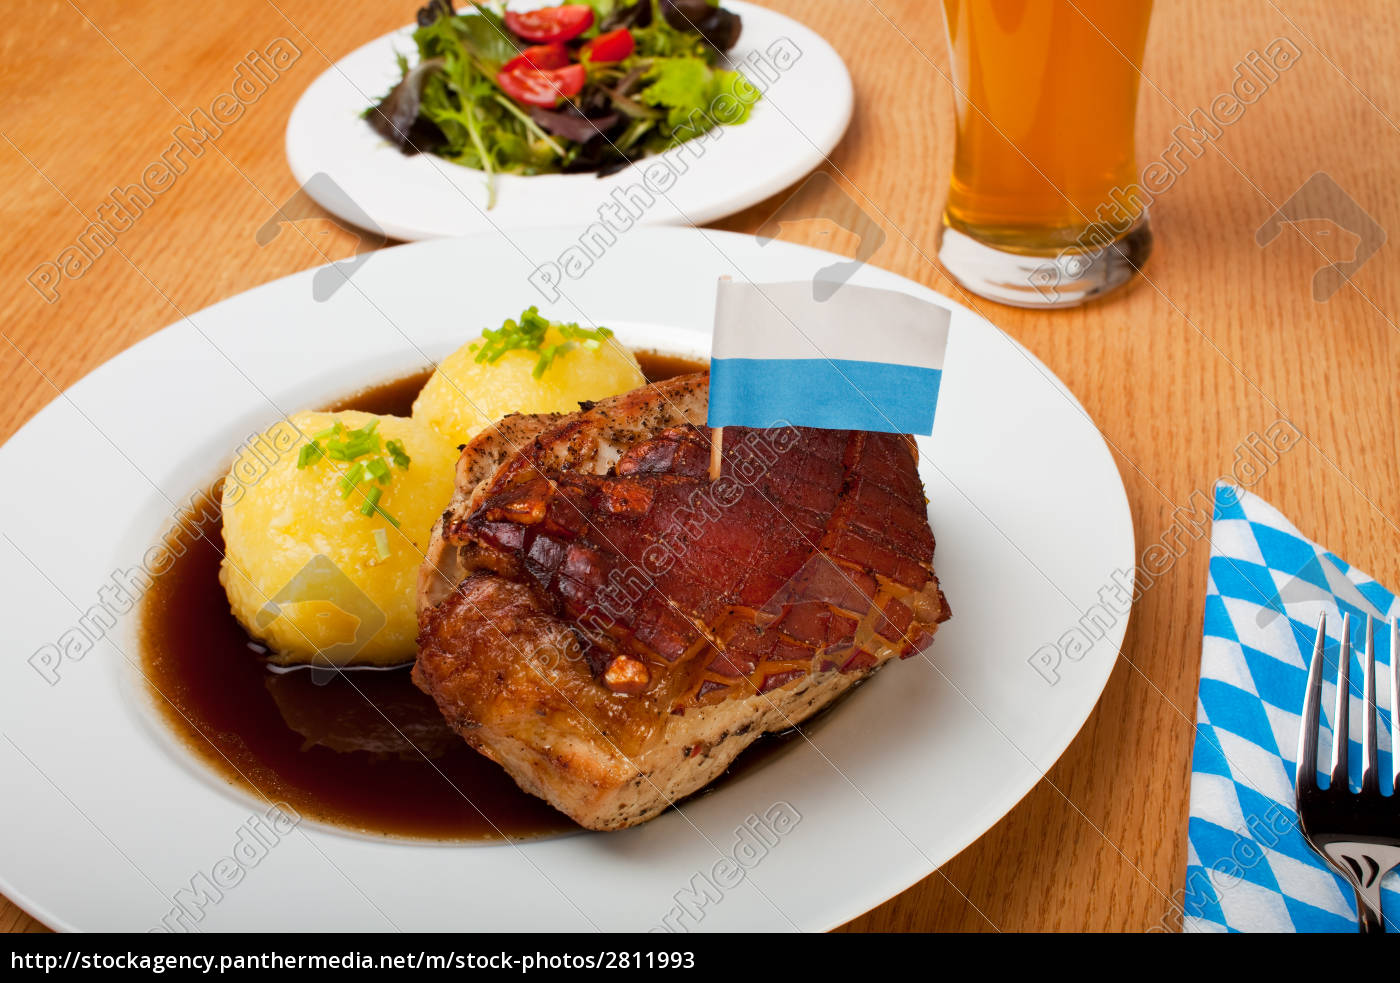 bavarian, roast, pork, with, dumplings - 2811993